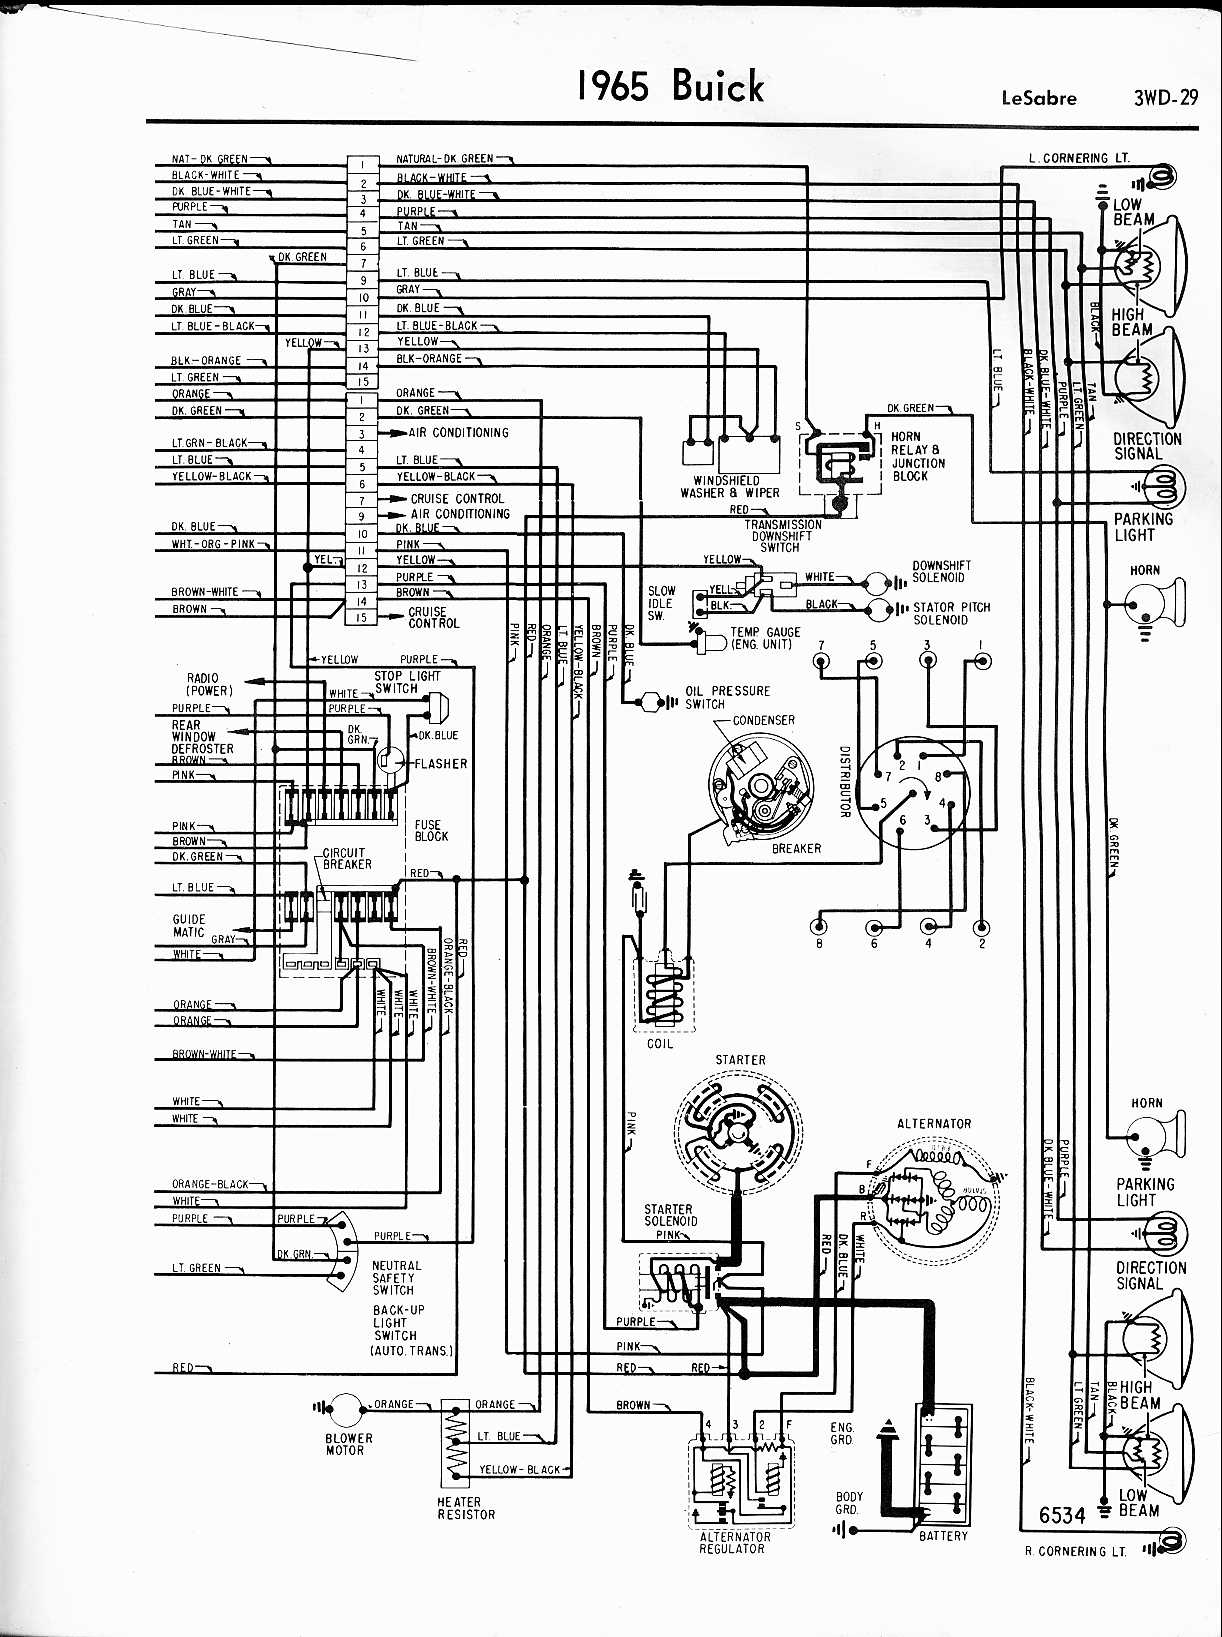 1996 Buick Skylark Fuse Box Diagram Wiring Diagrams Grand Marquis Century Lighting Detailed Schematics 2000 Dash